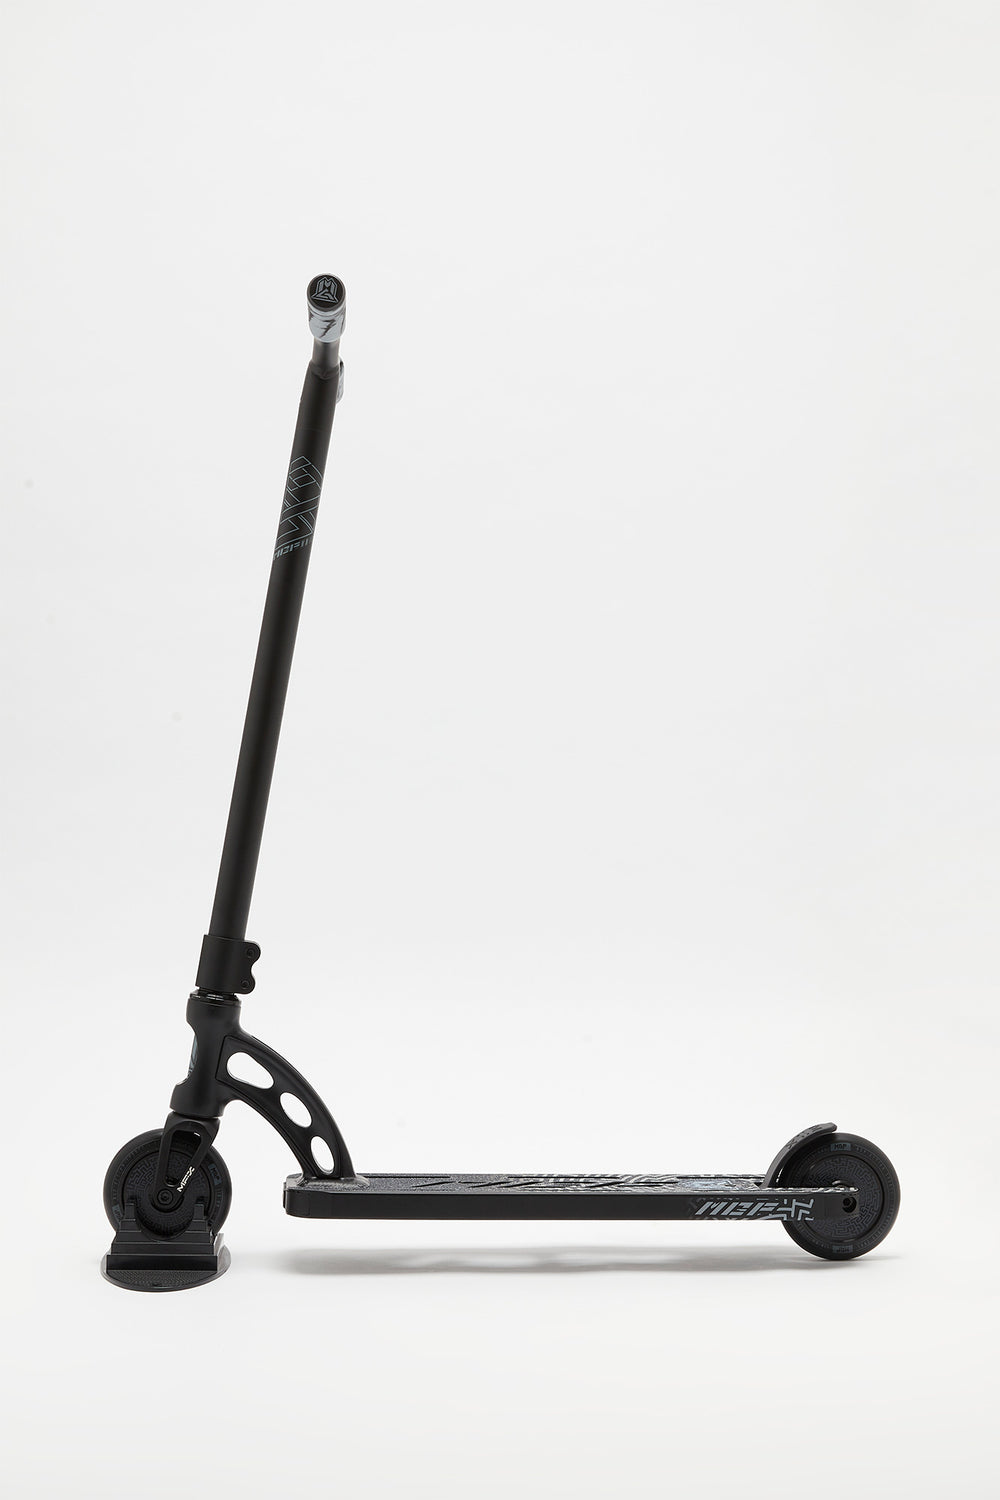 Madd Gear VX9 Pro Scooter Black